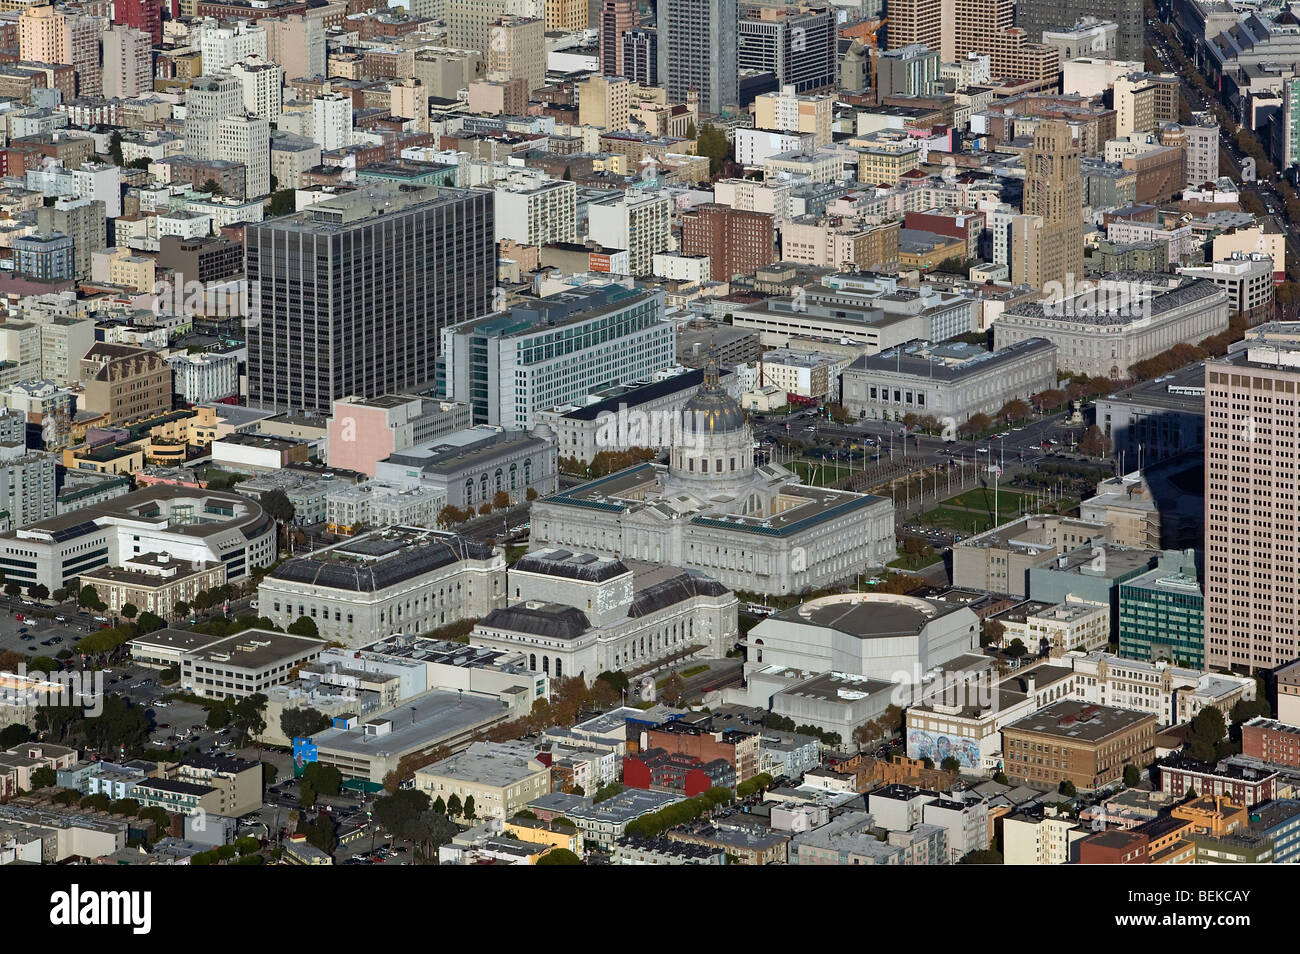 aerial view above San Francisco civic center city hall concert opera building Asian Art museum - Stock Image